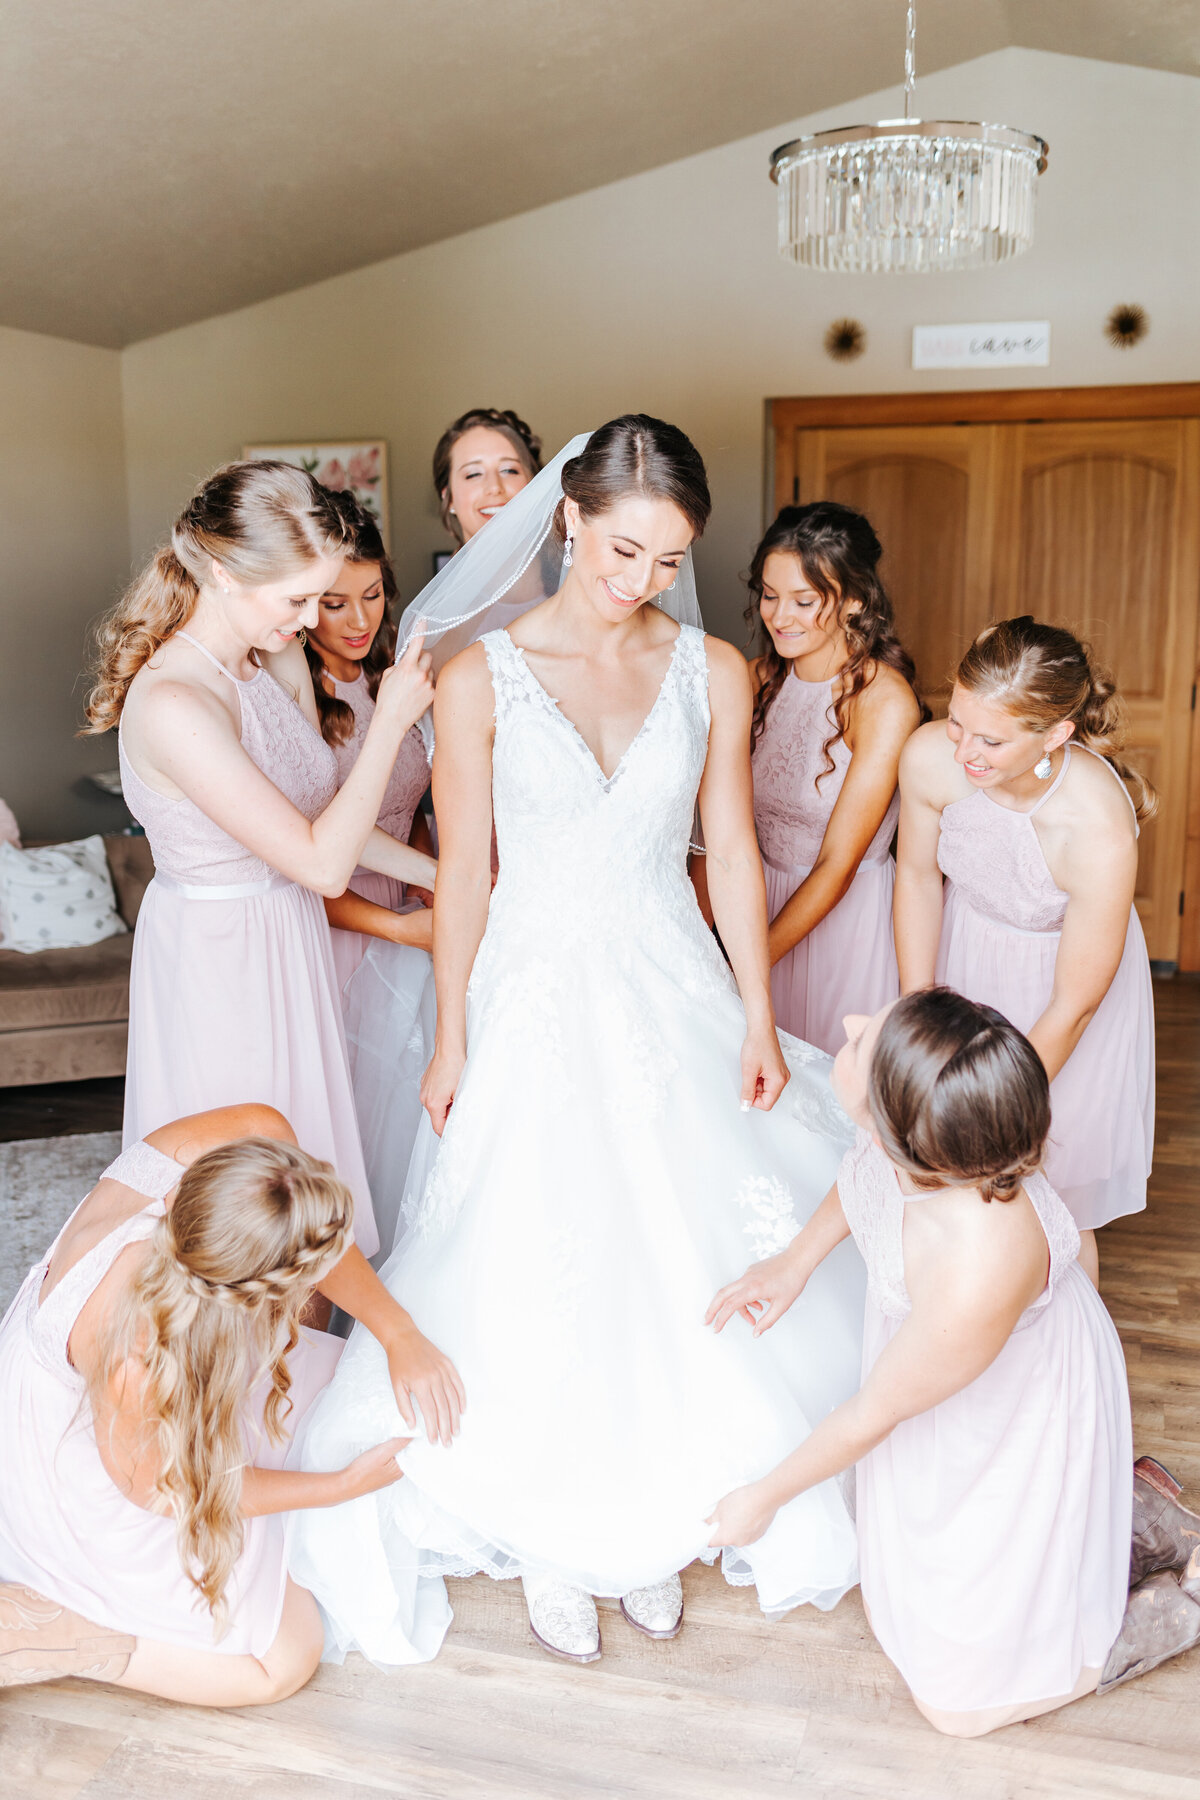 Bride Getting Ready with her Bridesmaids at Still Water Hollow Wedding